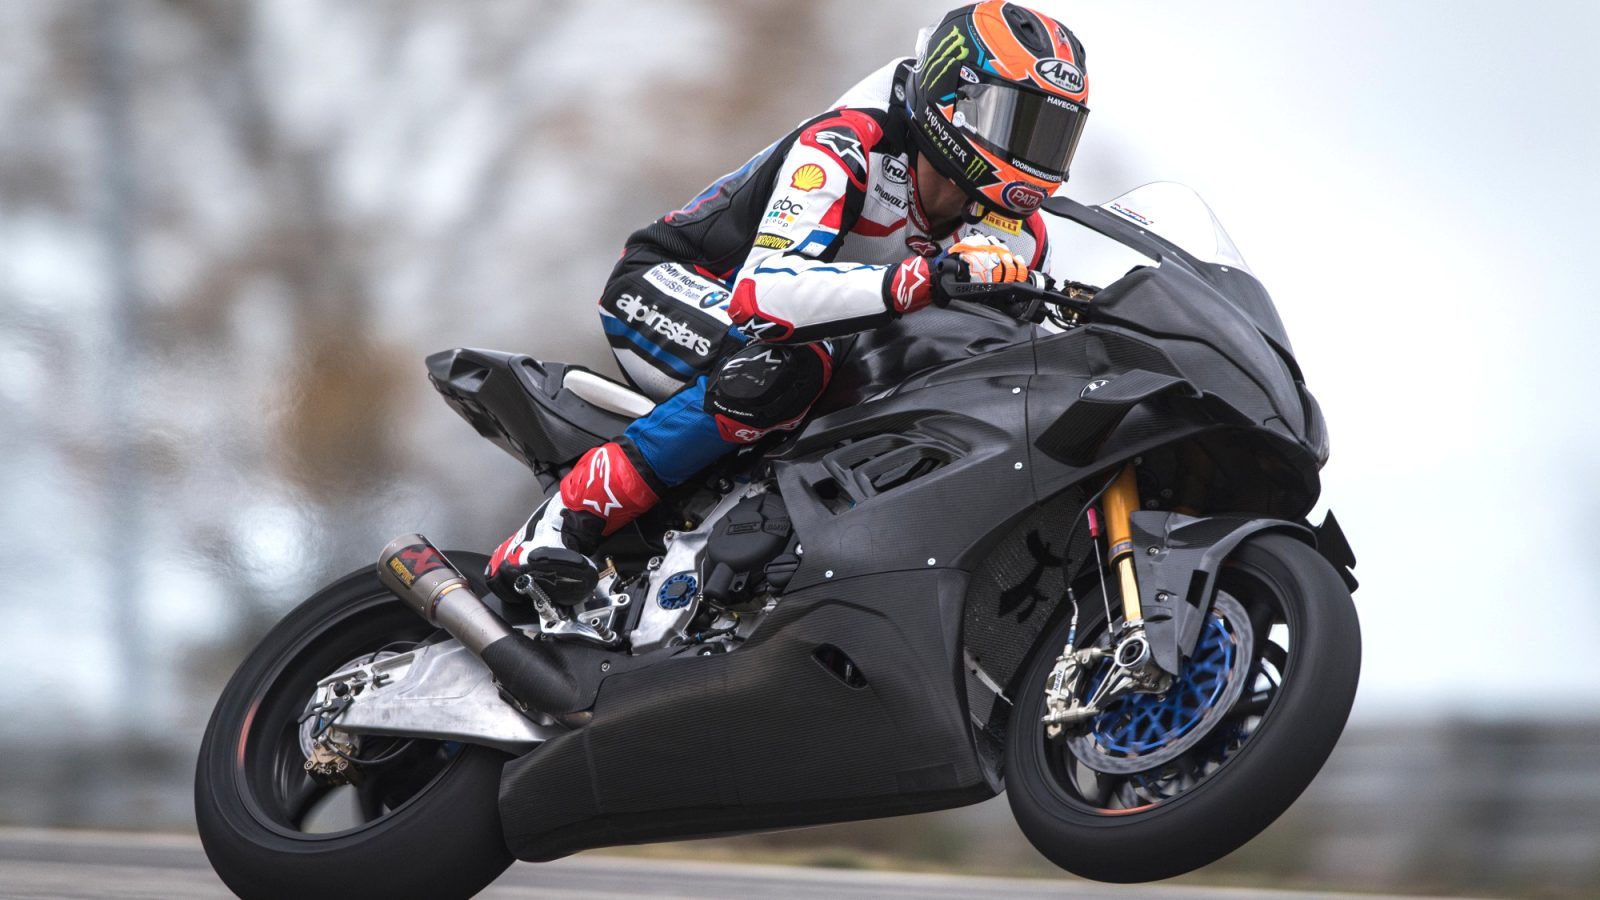 BMW wsbk 2021 Release Date and Concept